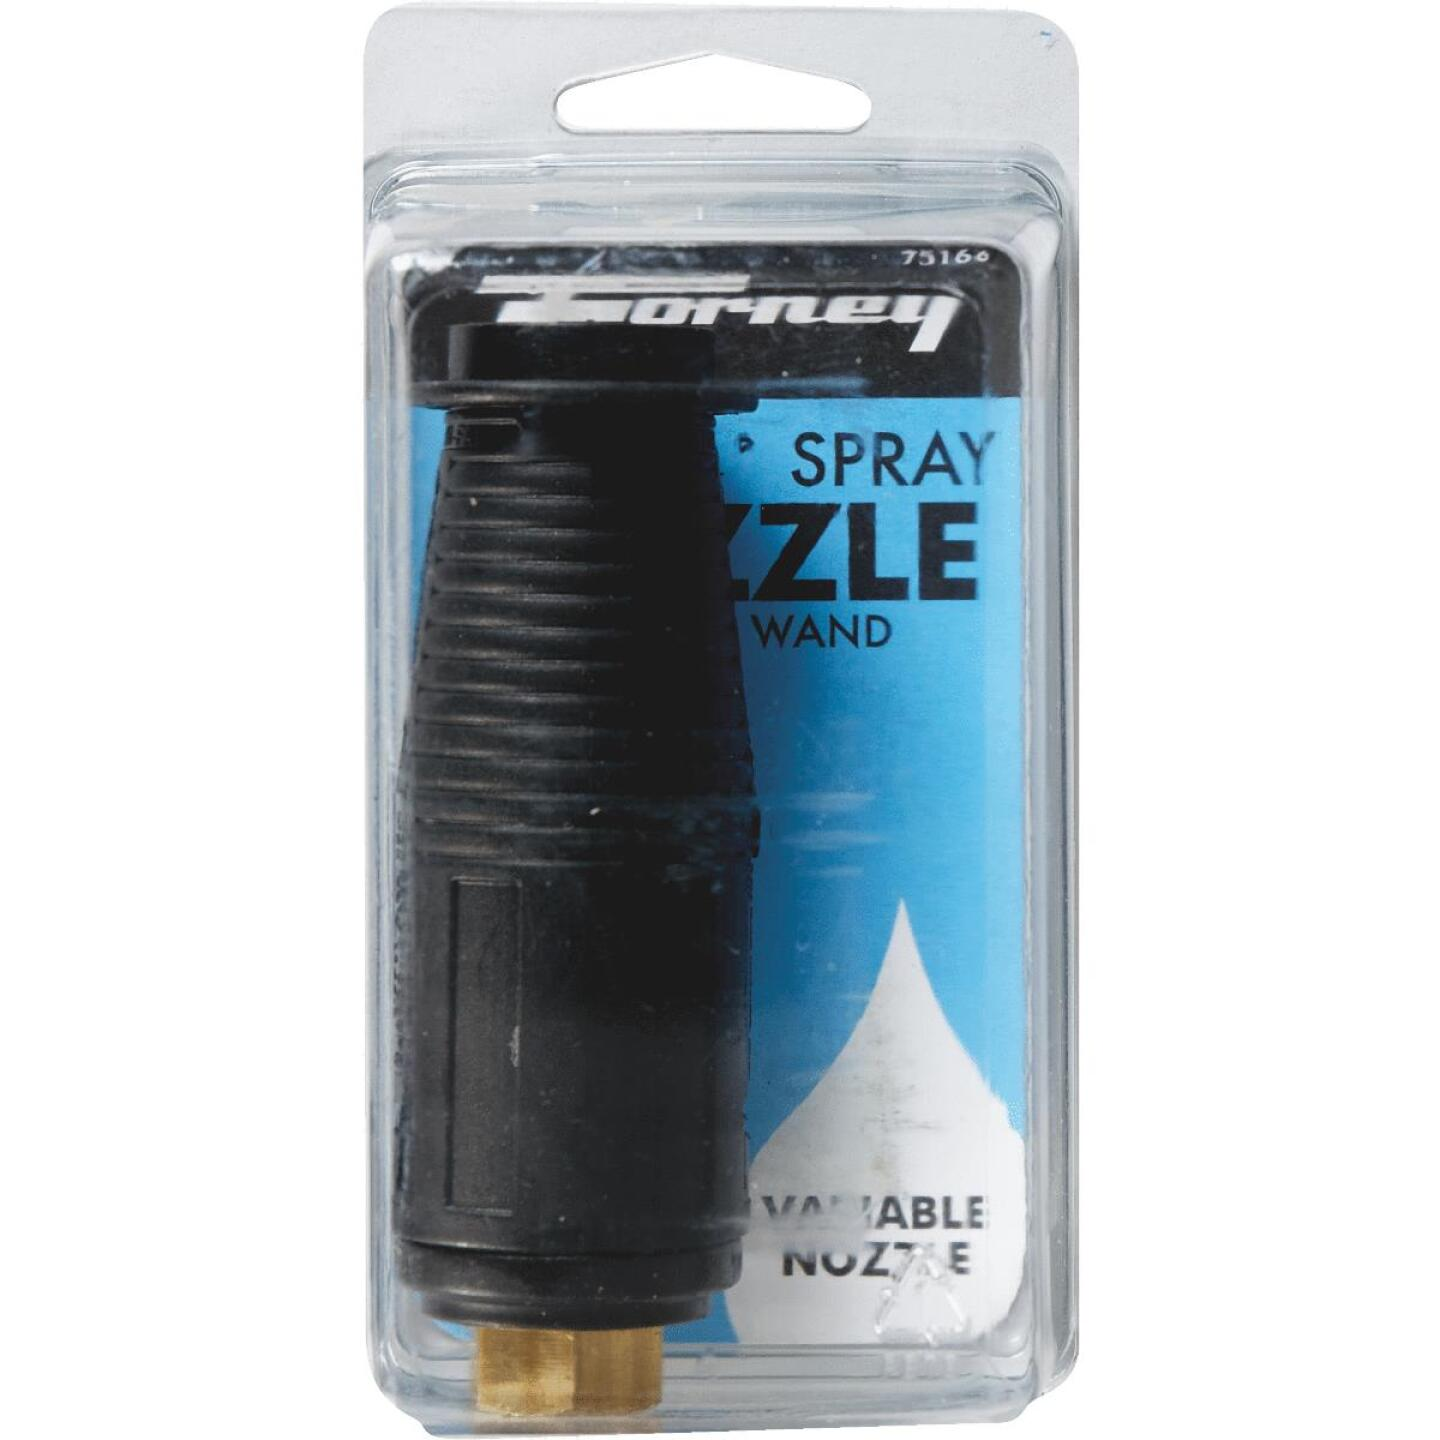 Forney 3200 psi Adjustable Turbo Pressure Washer Nozzle Image 2